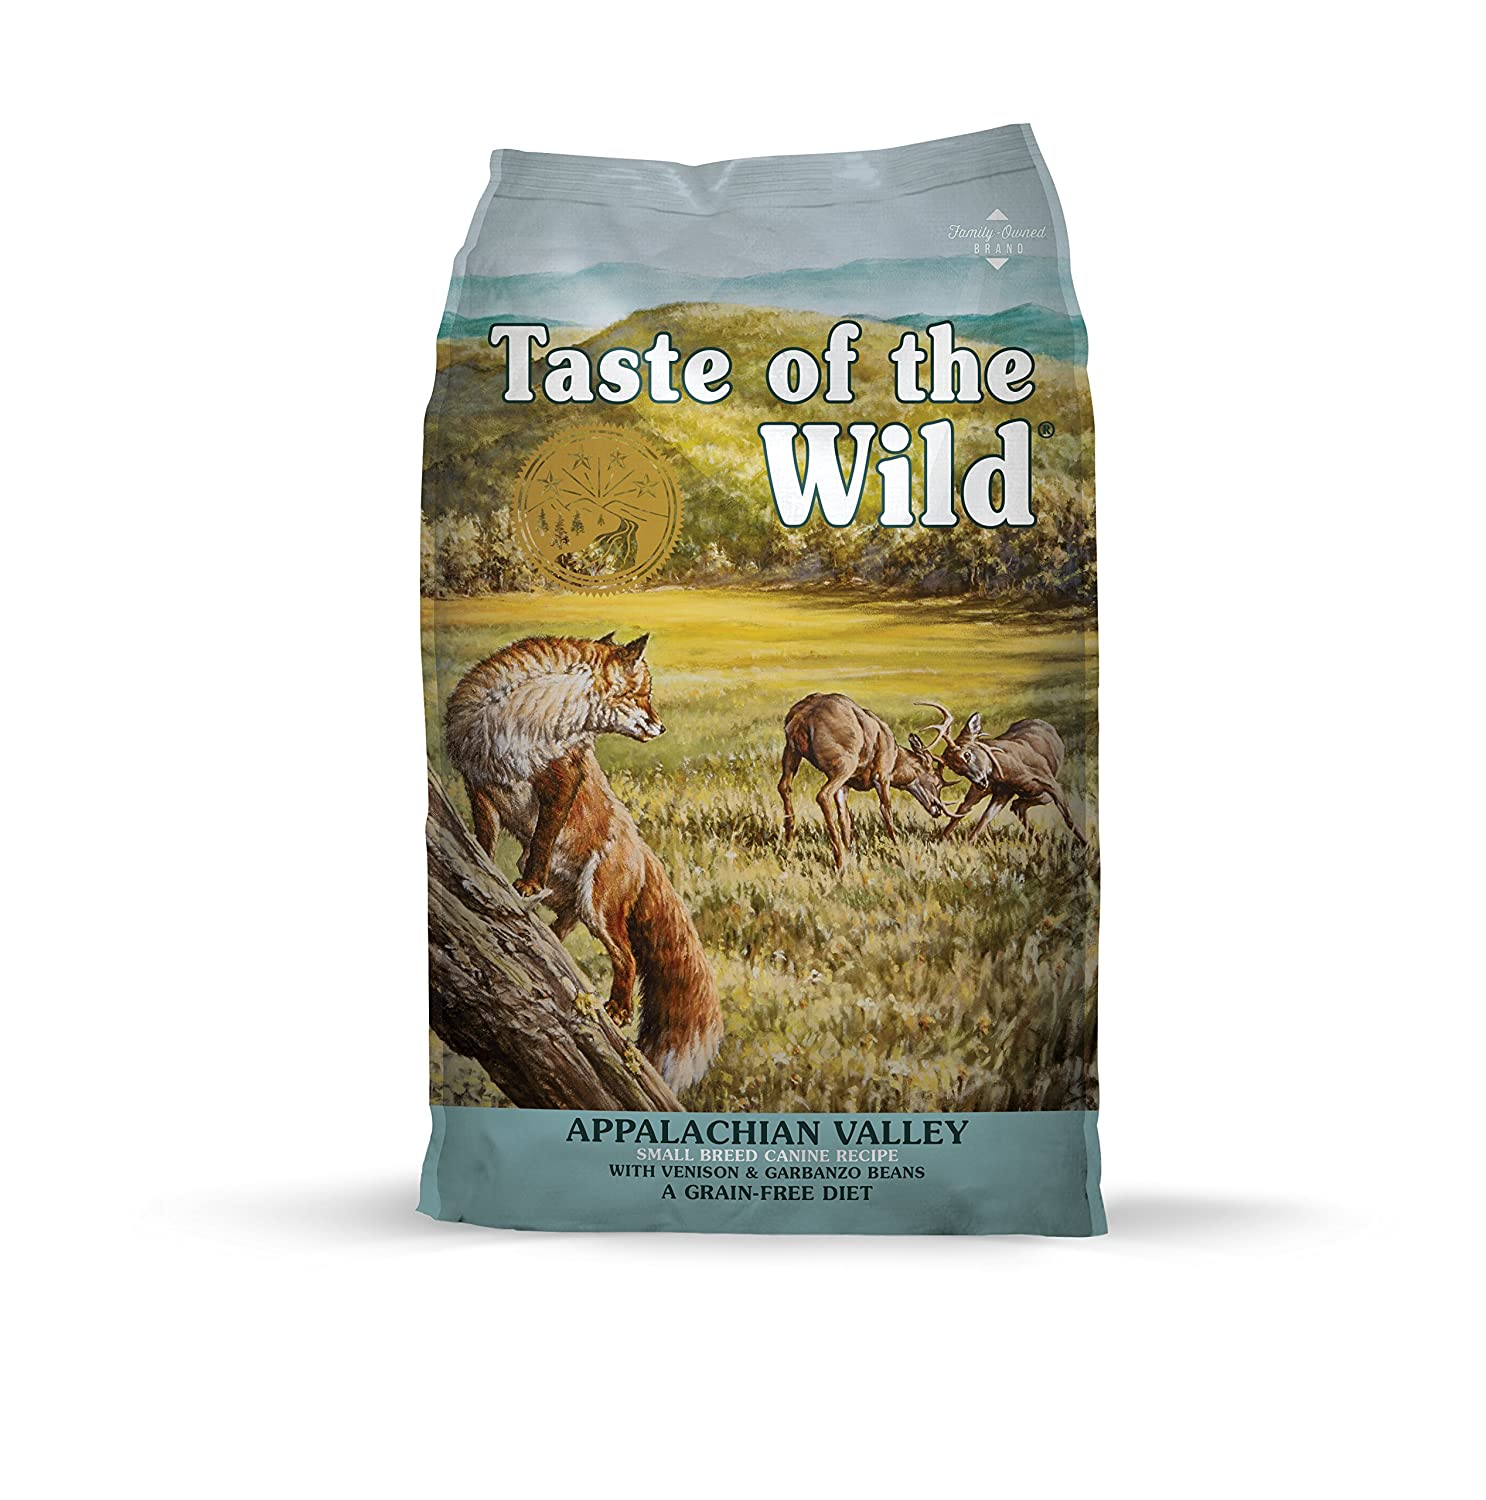 4.Taste of the Wild Appalachian Valley Small Breed